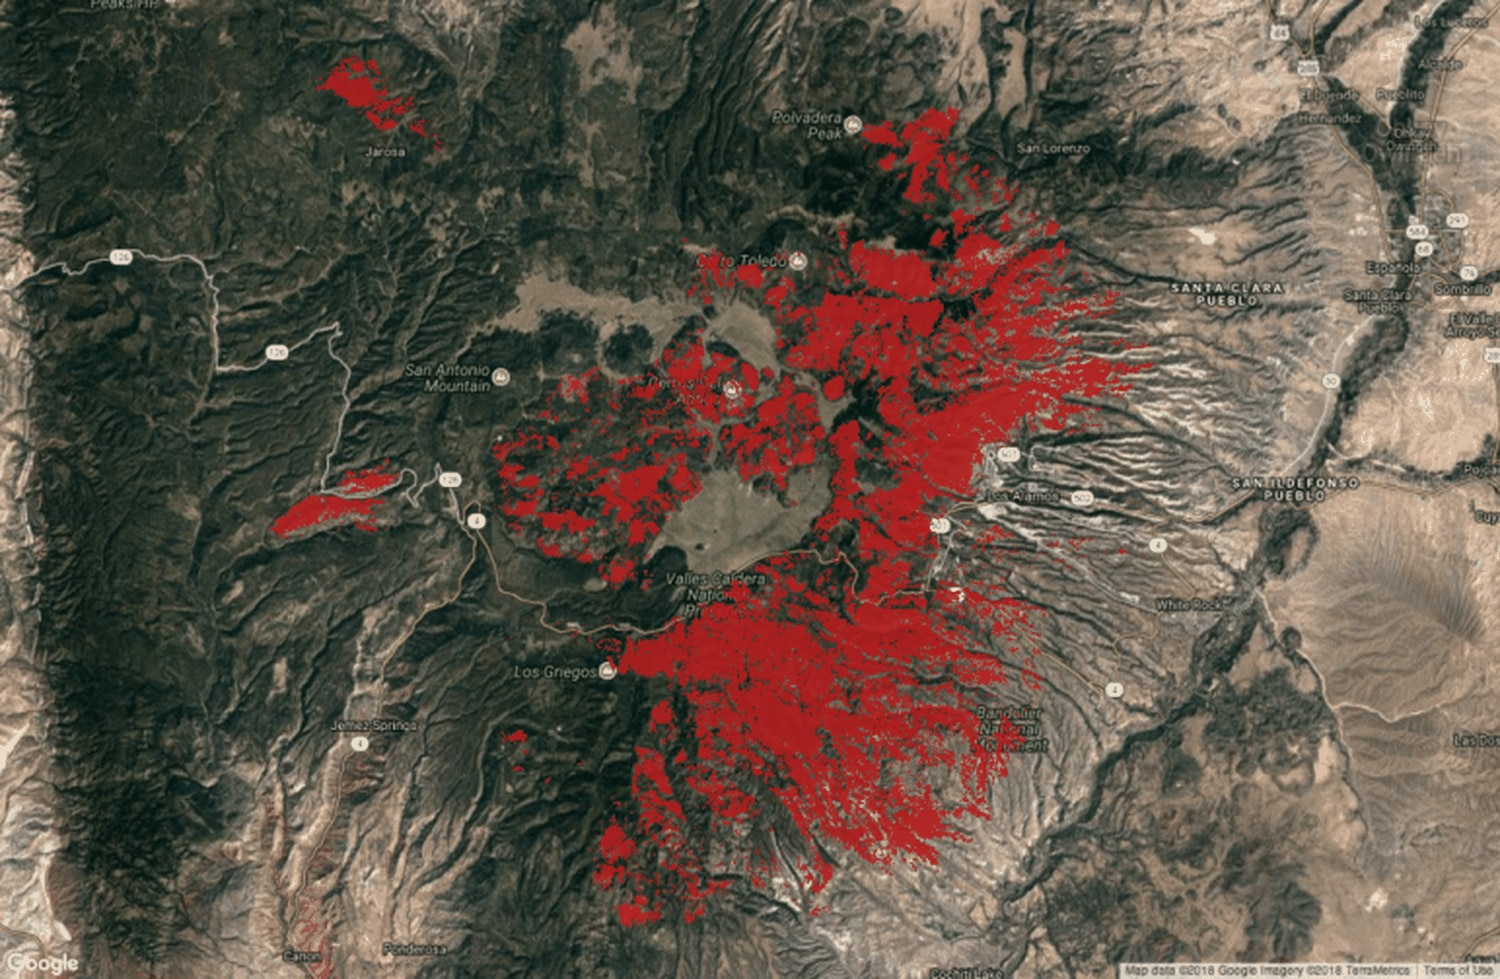 High severity, tree-killing fires in the Jemez Mountains since the 1970s through 2017, with most of the fires shown in red occurring since 1996.